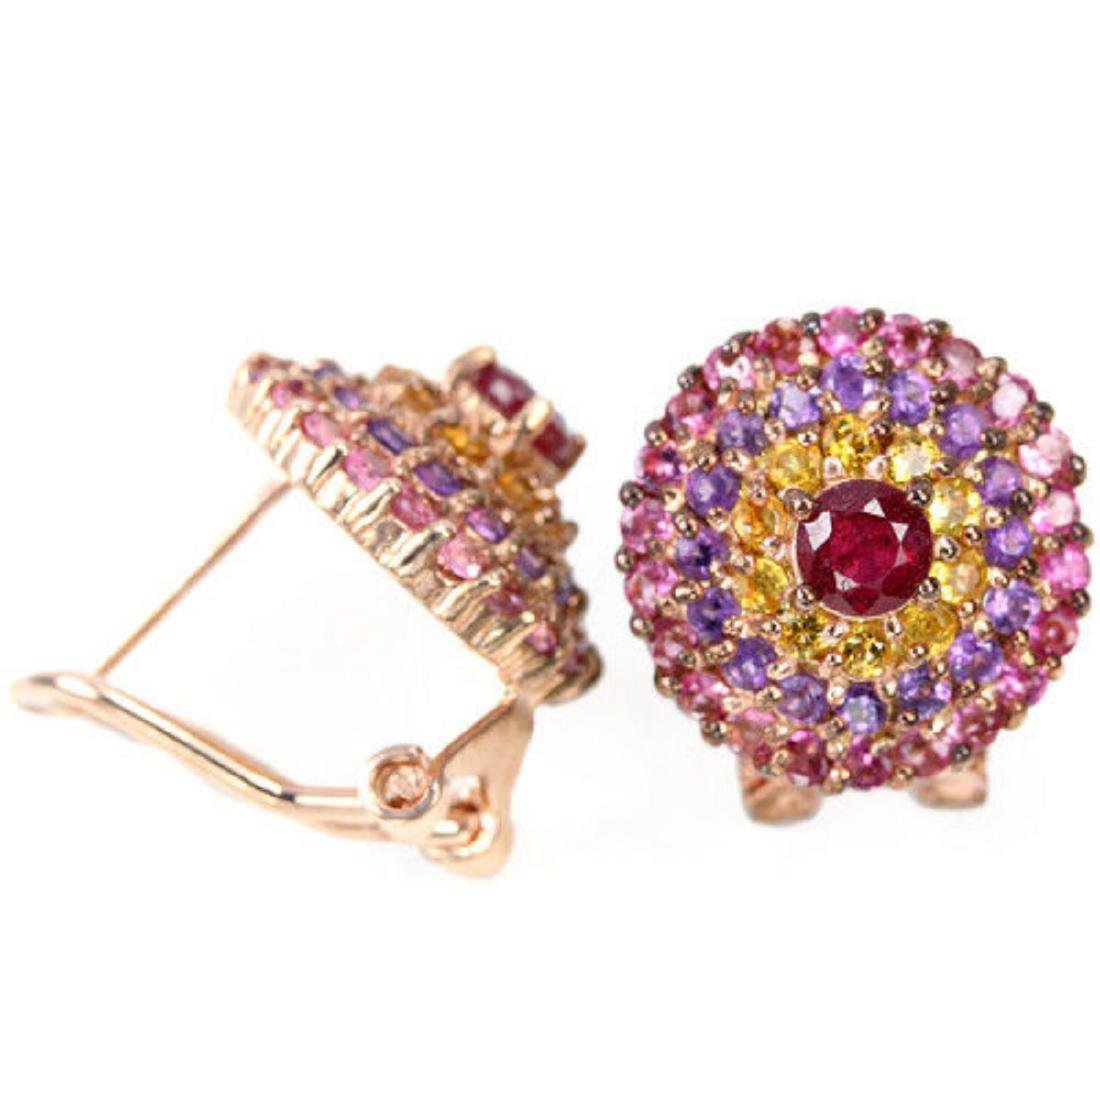 Natural RUBY CITRINE AMETHYST TOURMALINE Earrings - 2